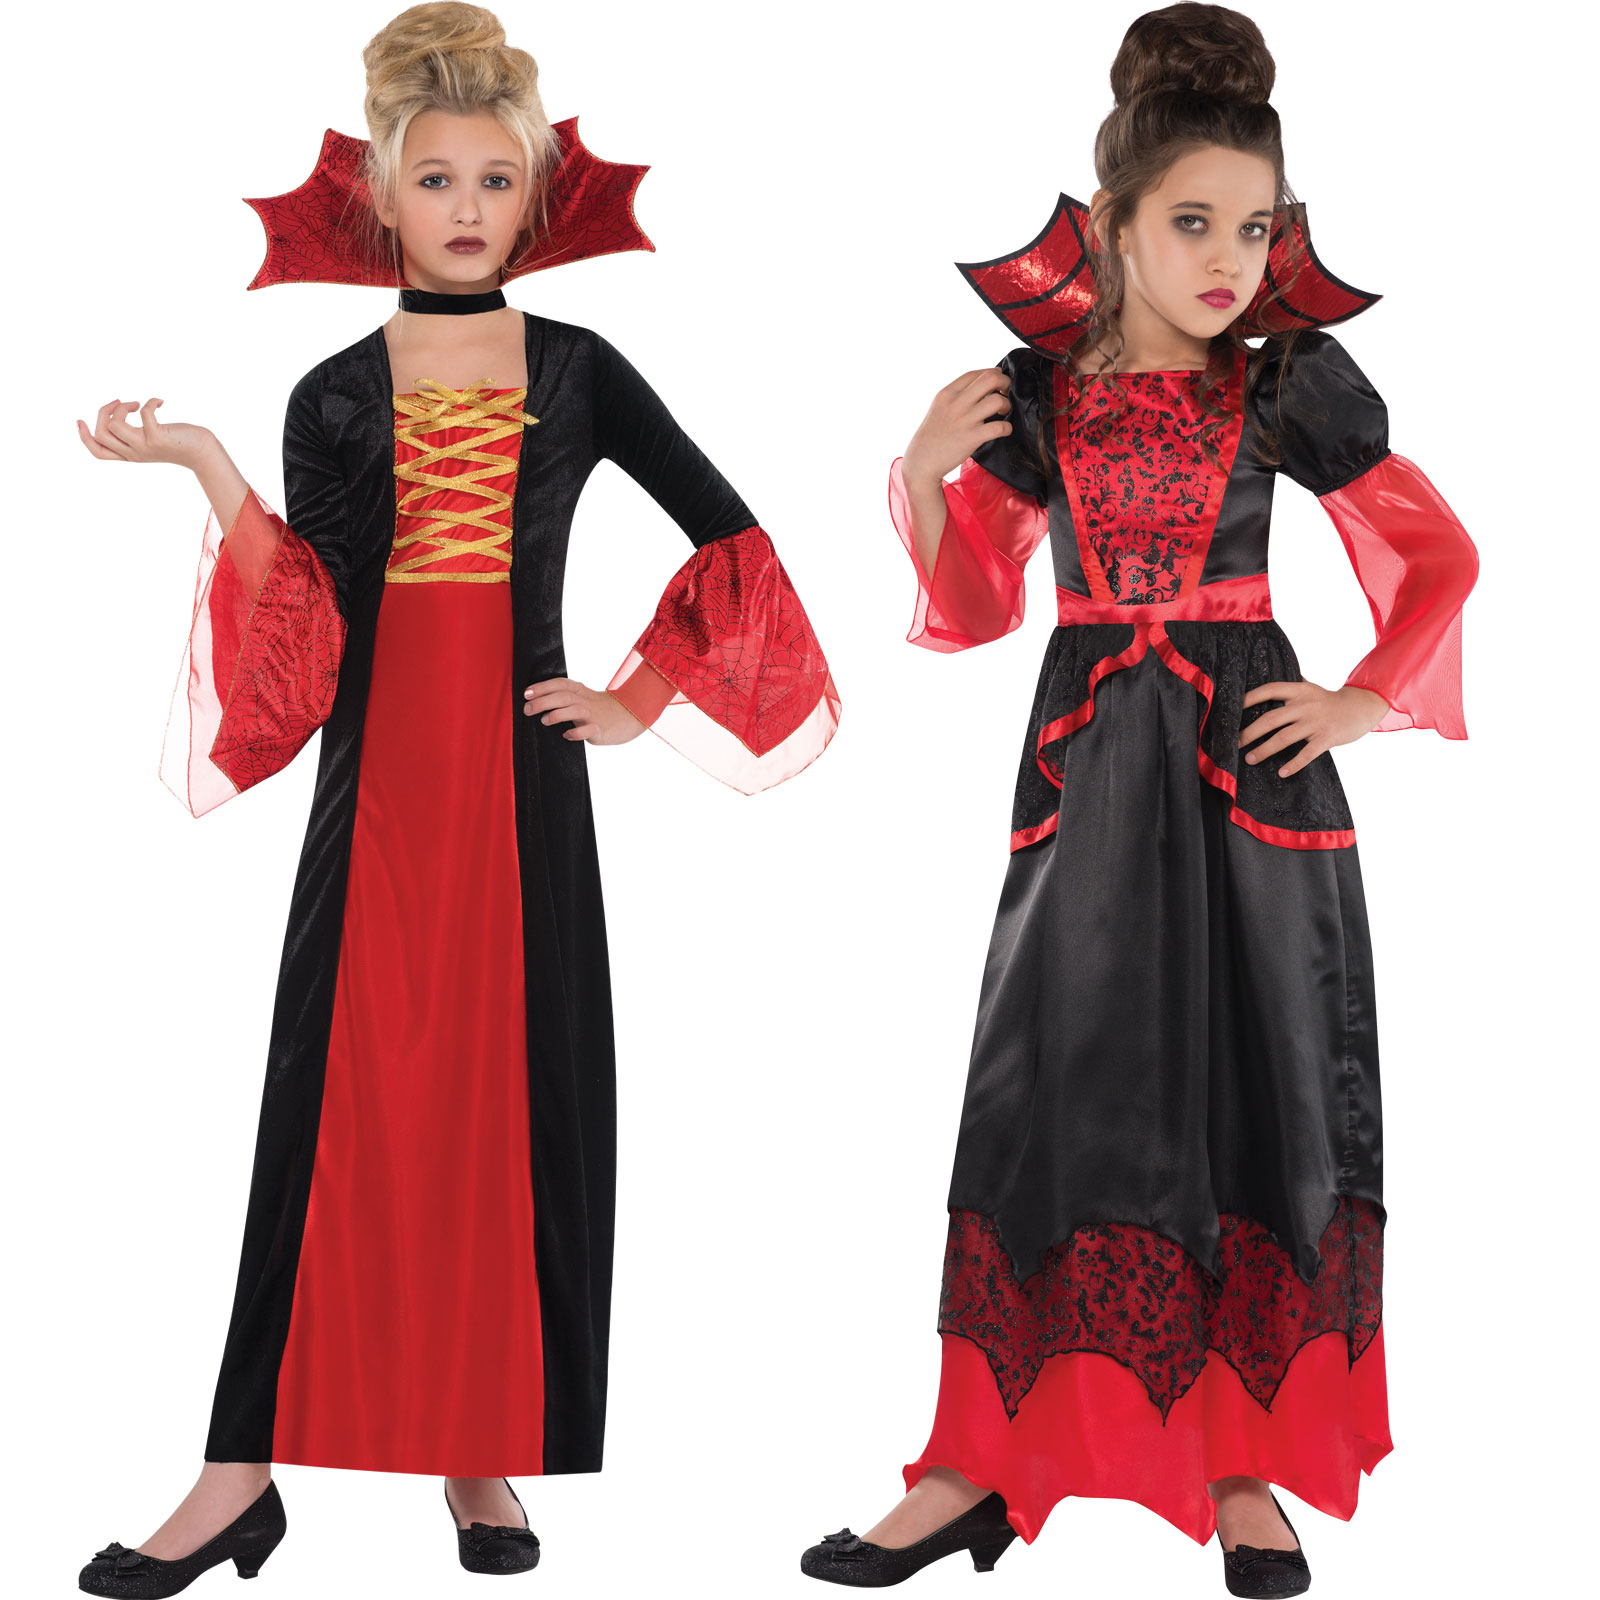 Details about Girls Halloween Vampire Queen Gothic Princess Costumes Kids  Fancy Dress